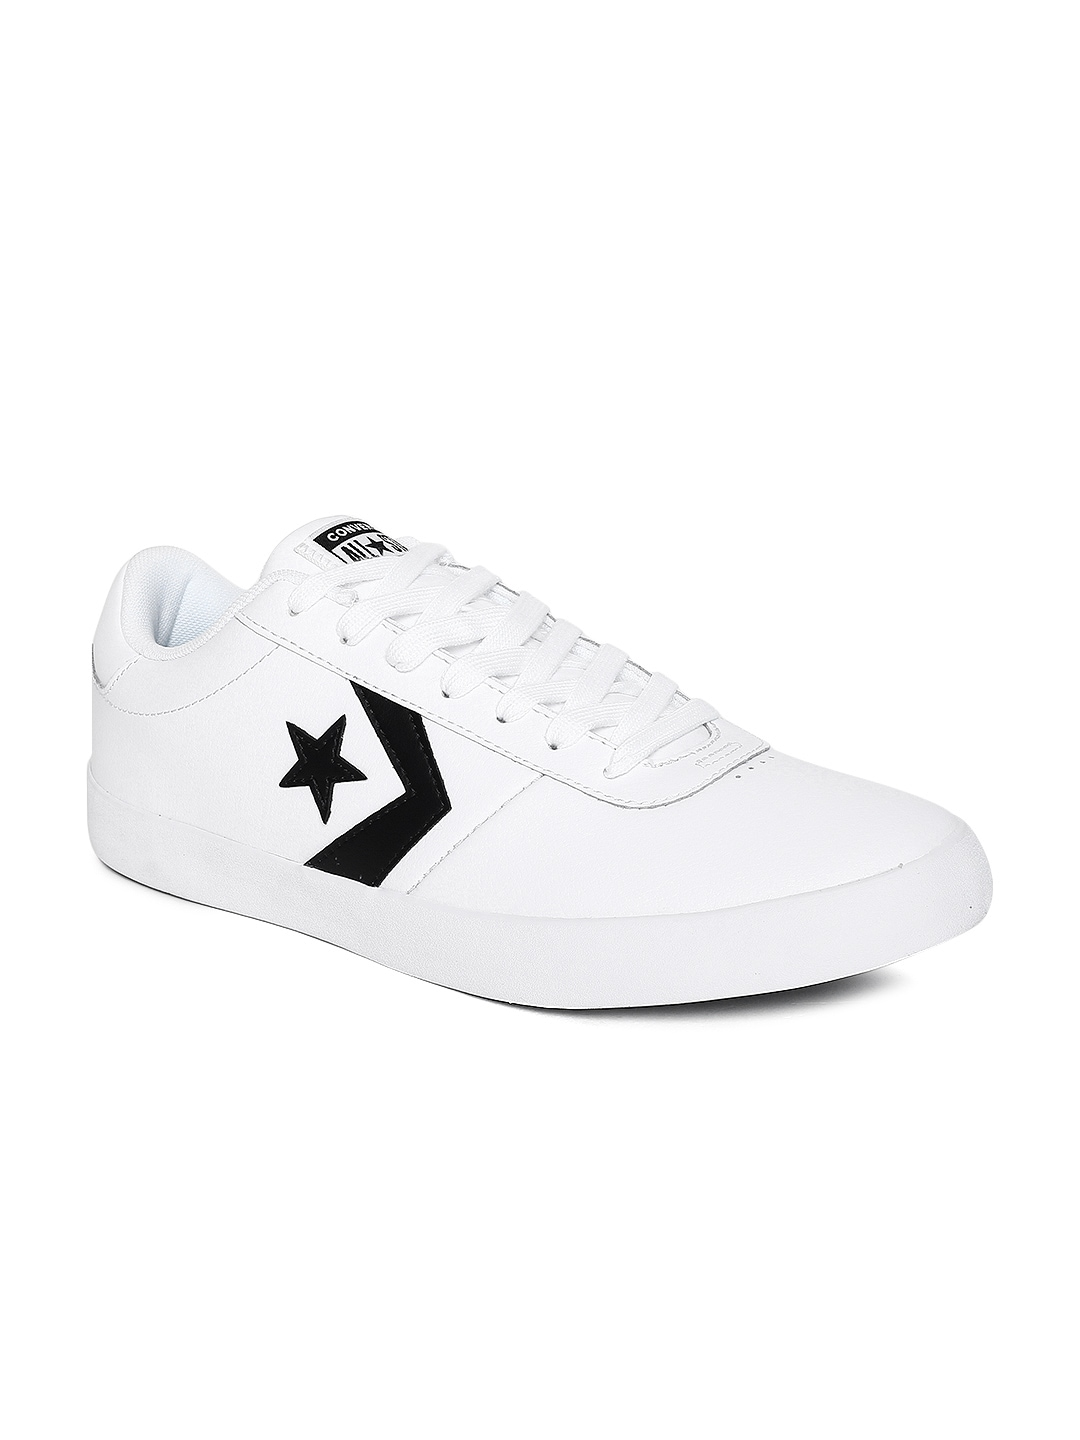 62c28a3a47c966 Converse Shoes - Buy Converse Canvas Shoes   Sneakers Online